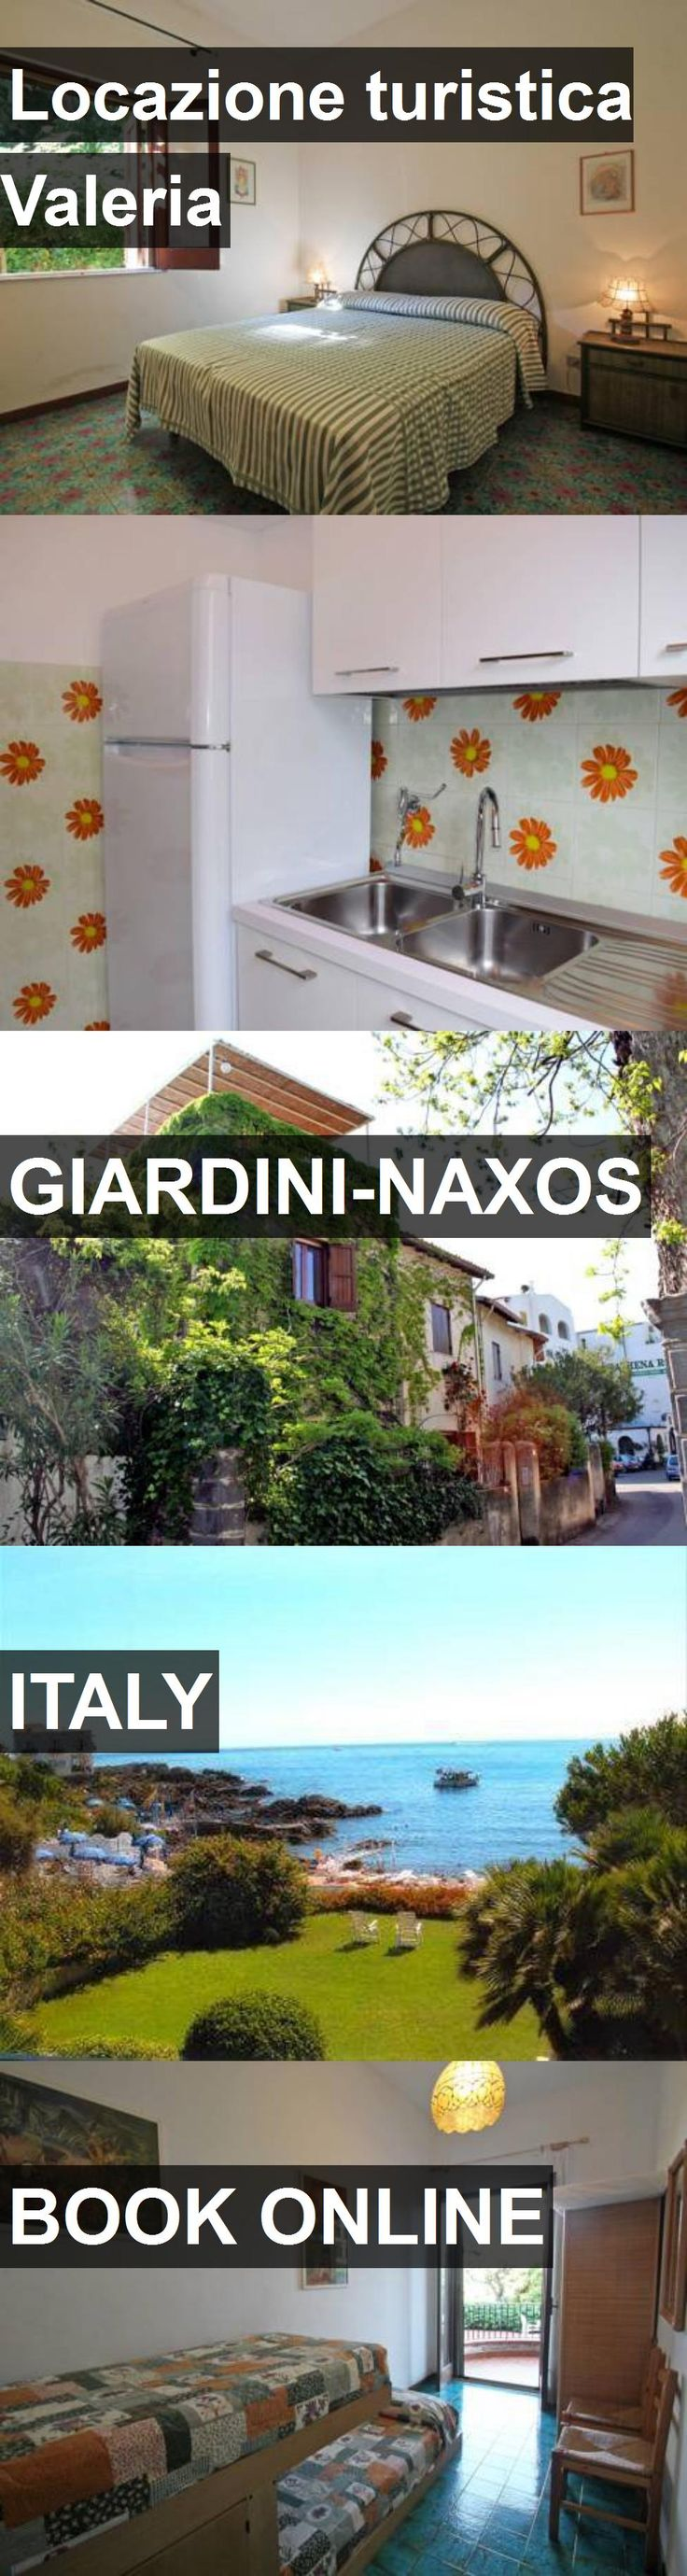 Hotel Locazione turistica Valeria in Giardini-Naxos, Italy. For more information, photos, reviews and best prices please follow the link. #Italy #Giardini-Naxos #travel #vacation #hotel